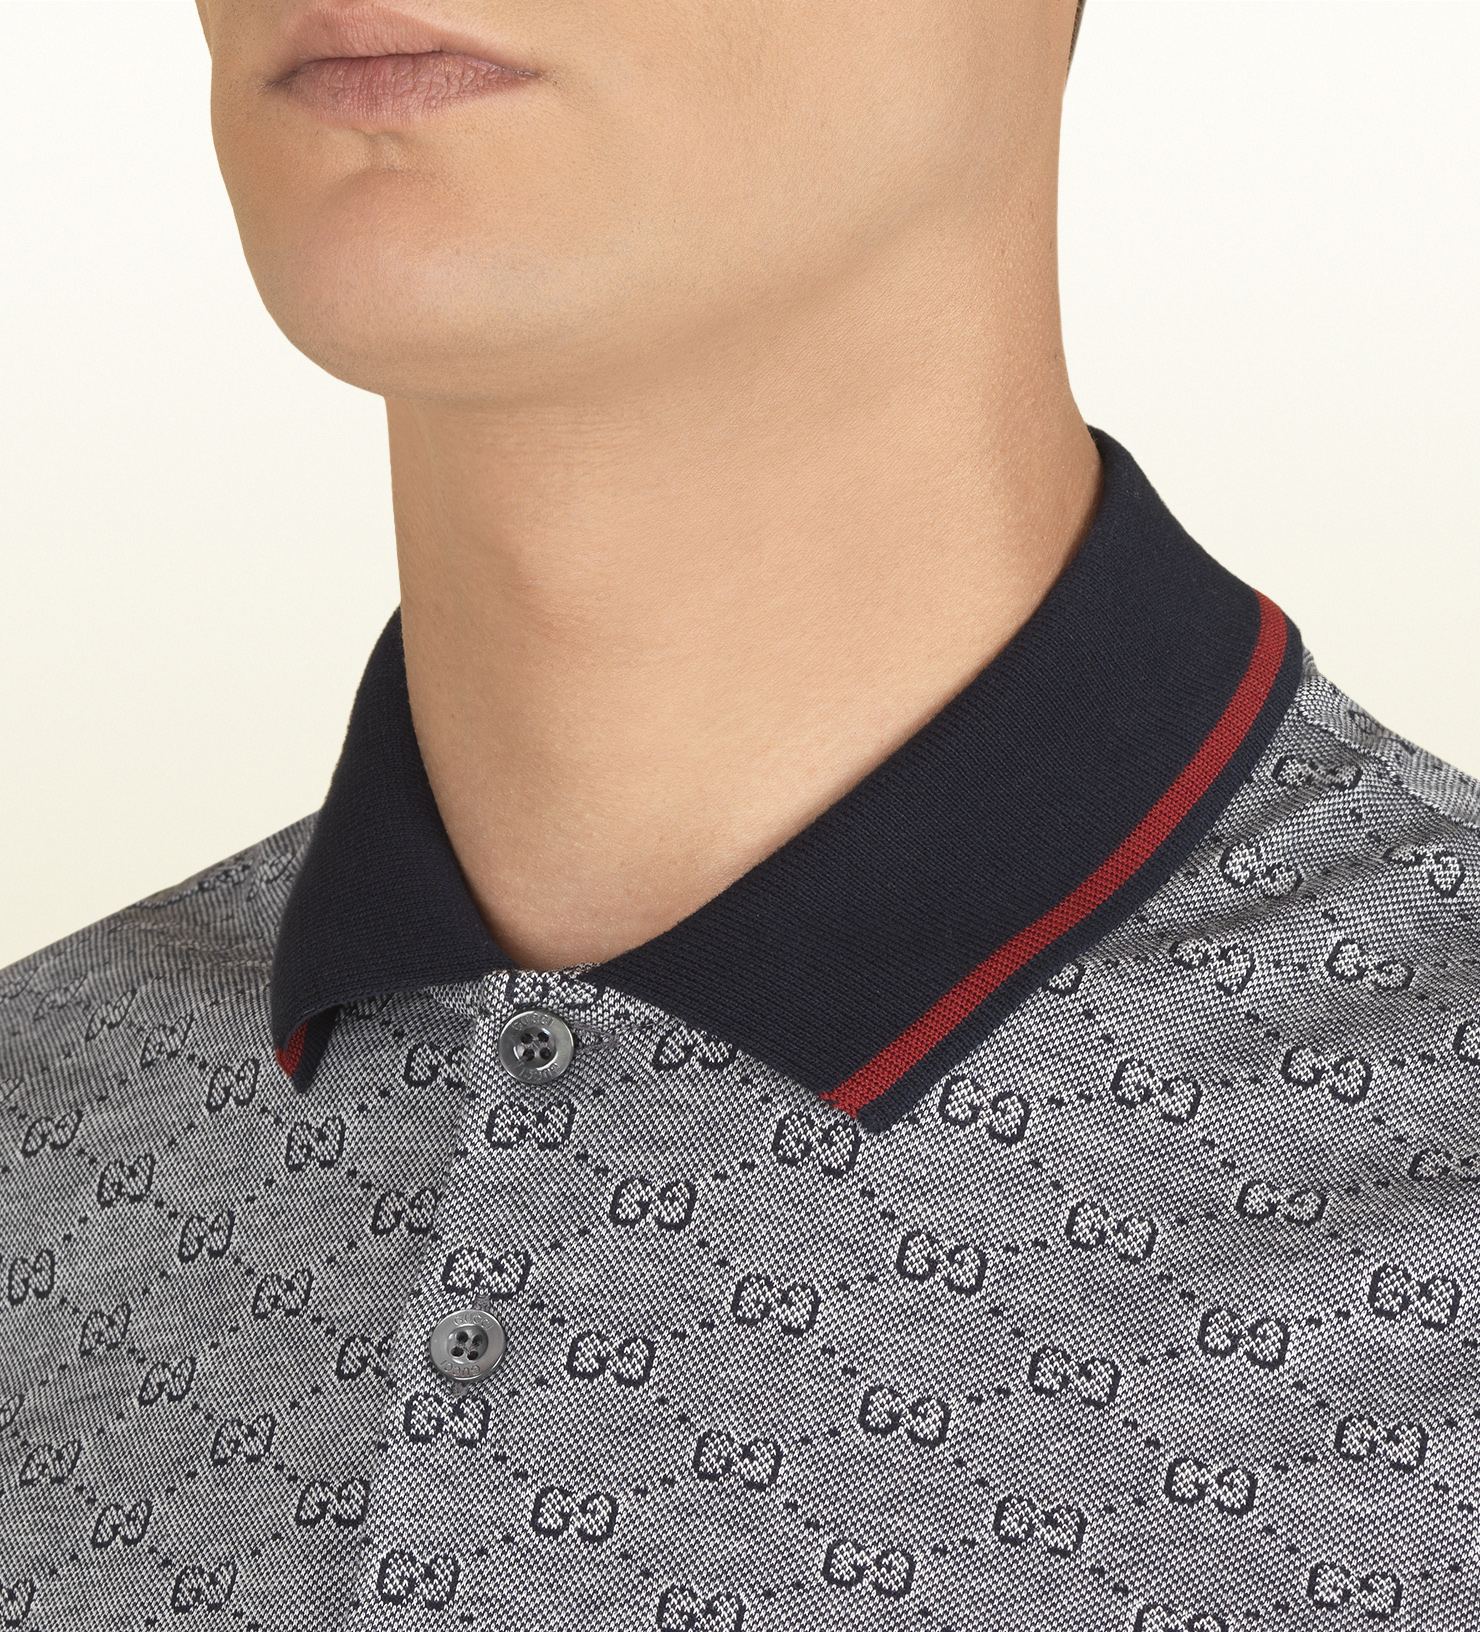 15b1a07c8 Gucci Ink Pique Gg Jacquard Short Sleeve Polo in Gray for Men - Lyst